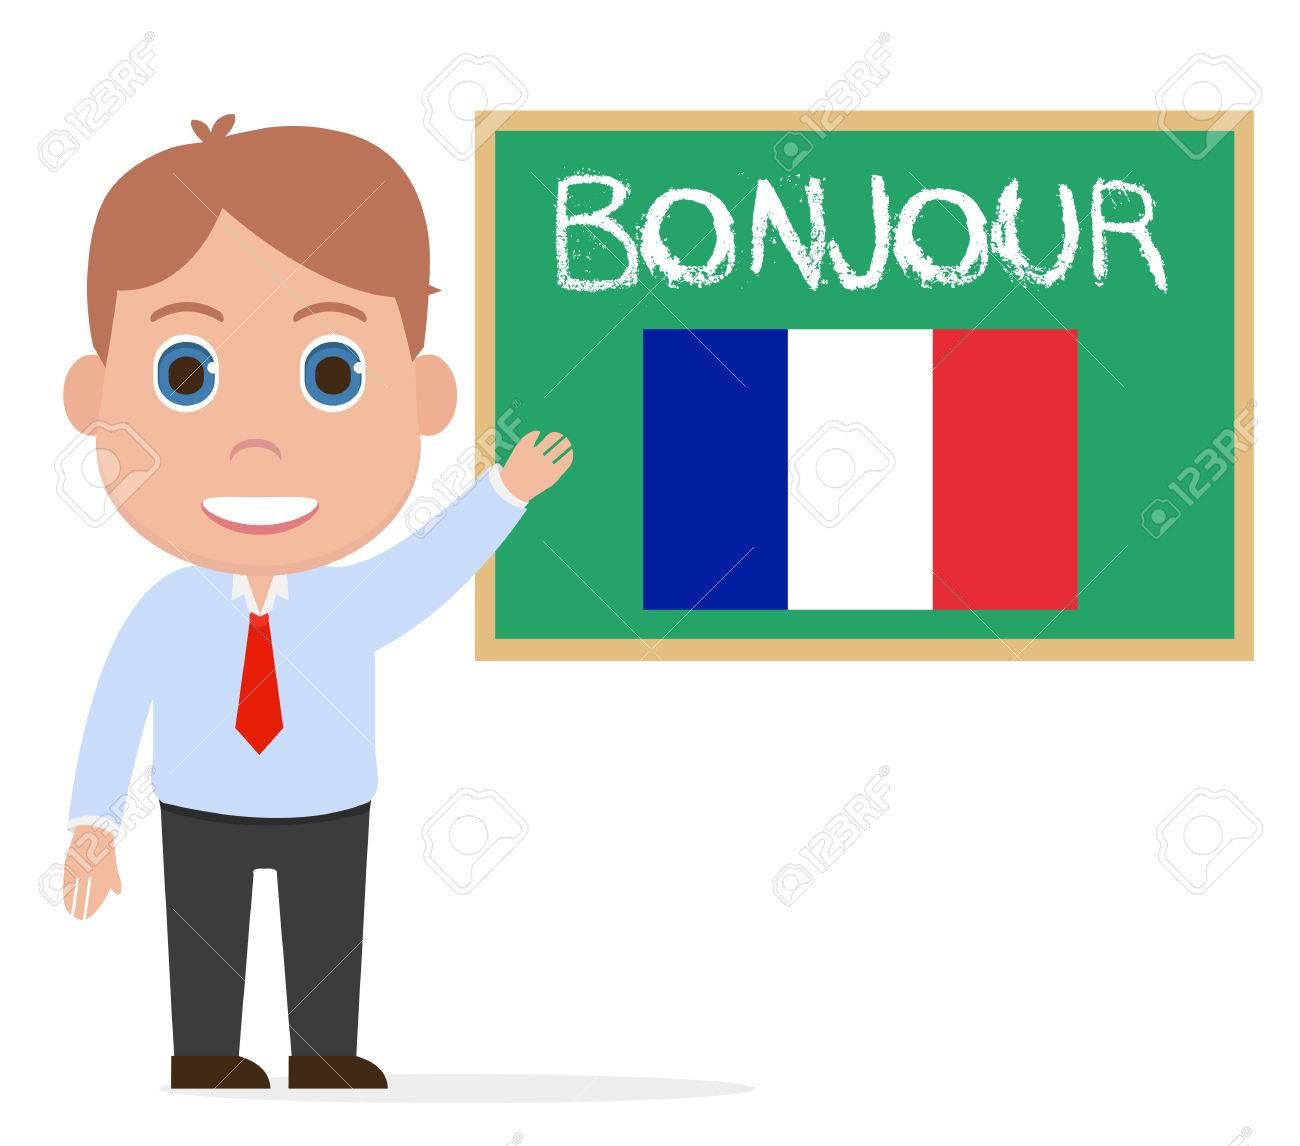 French teacher, bonjour.